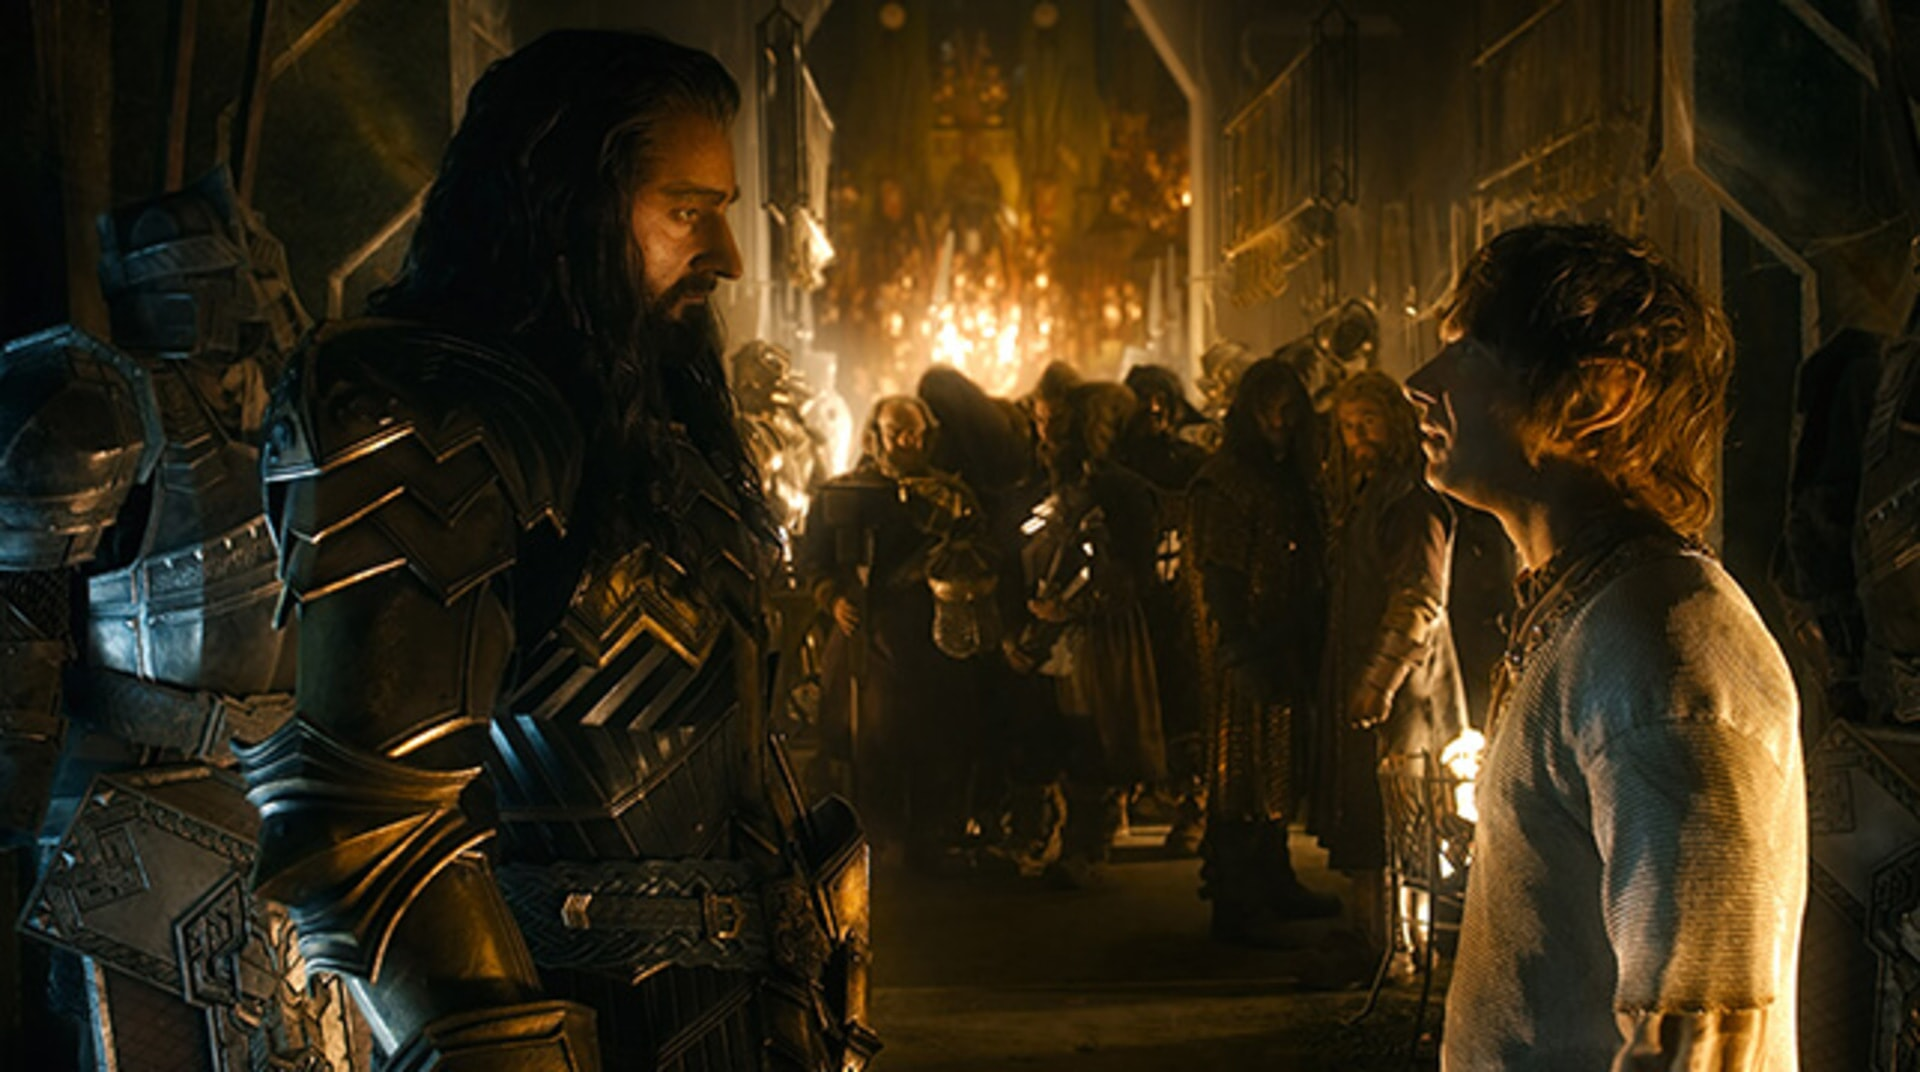 The Hobbit: The Battle of the Five Armies - Image 38